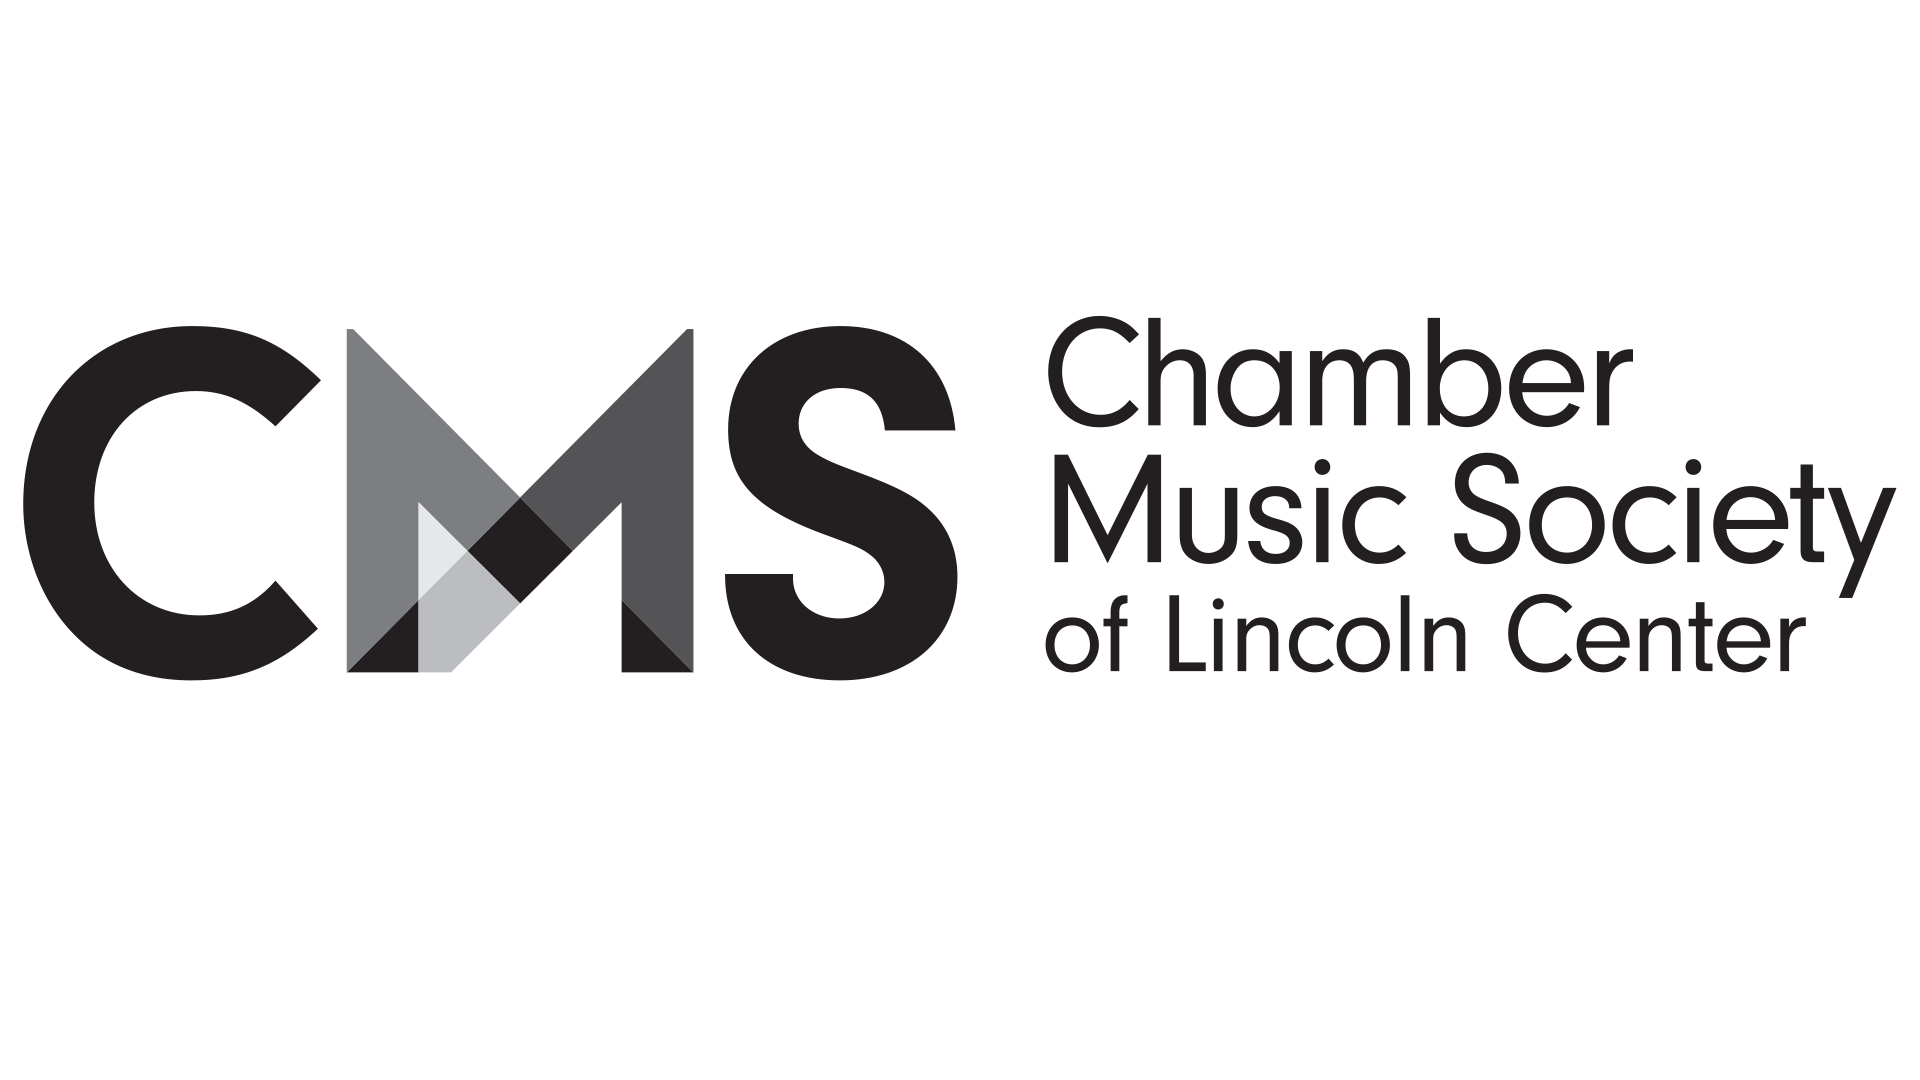 Chamber Music Society of Lincoln Center logo